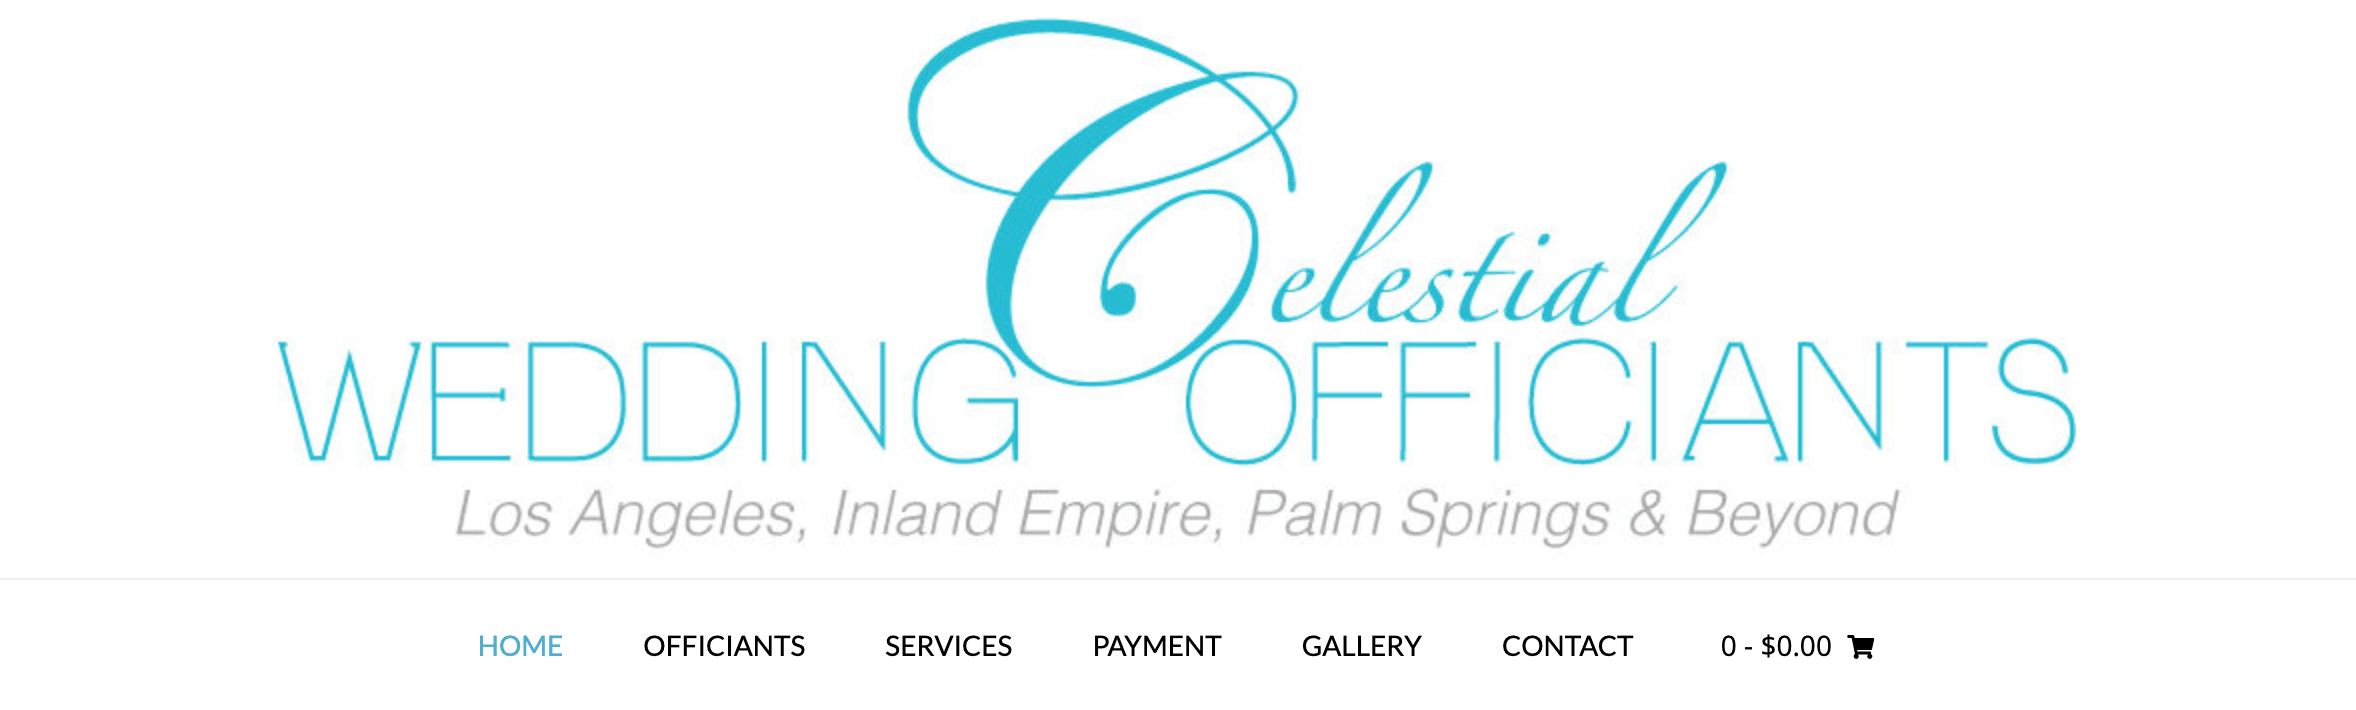 Celestial Wedding Officiants Wedding Officiant Los Angeles